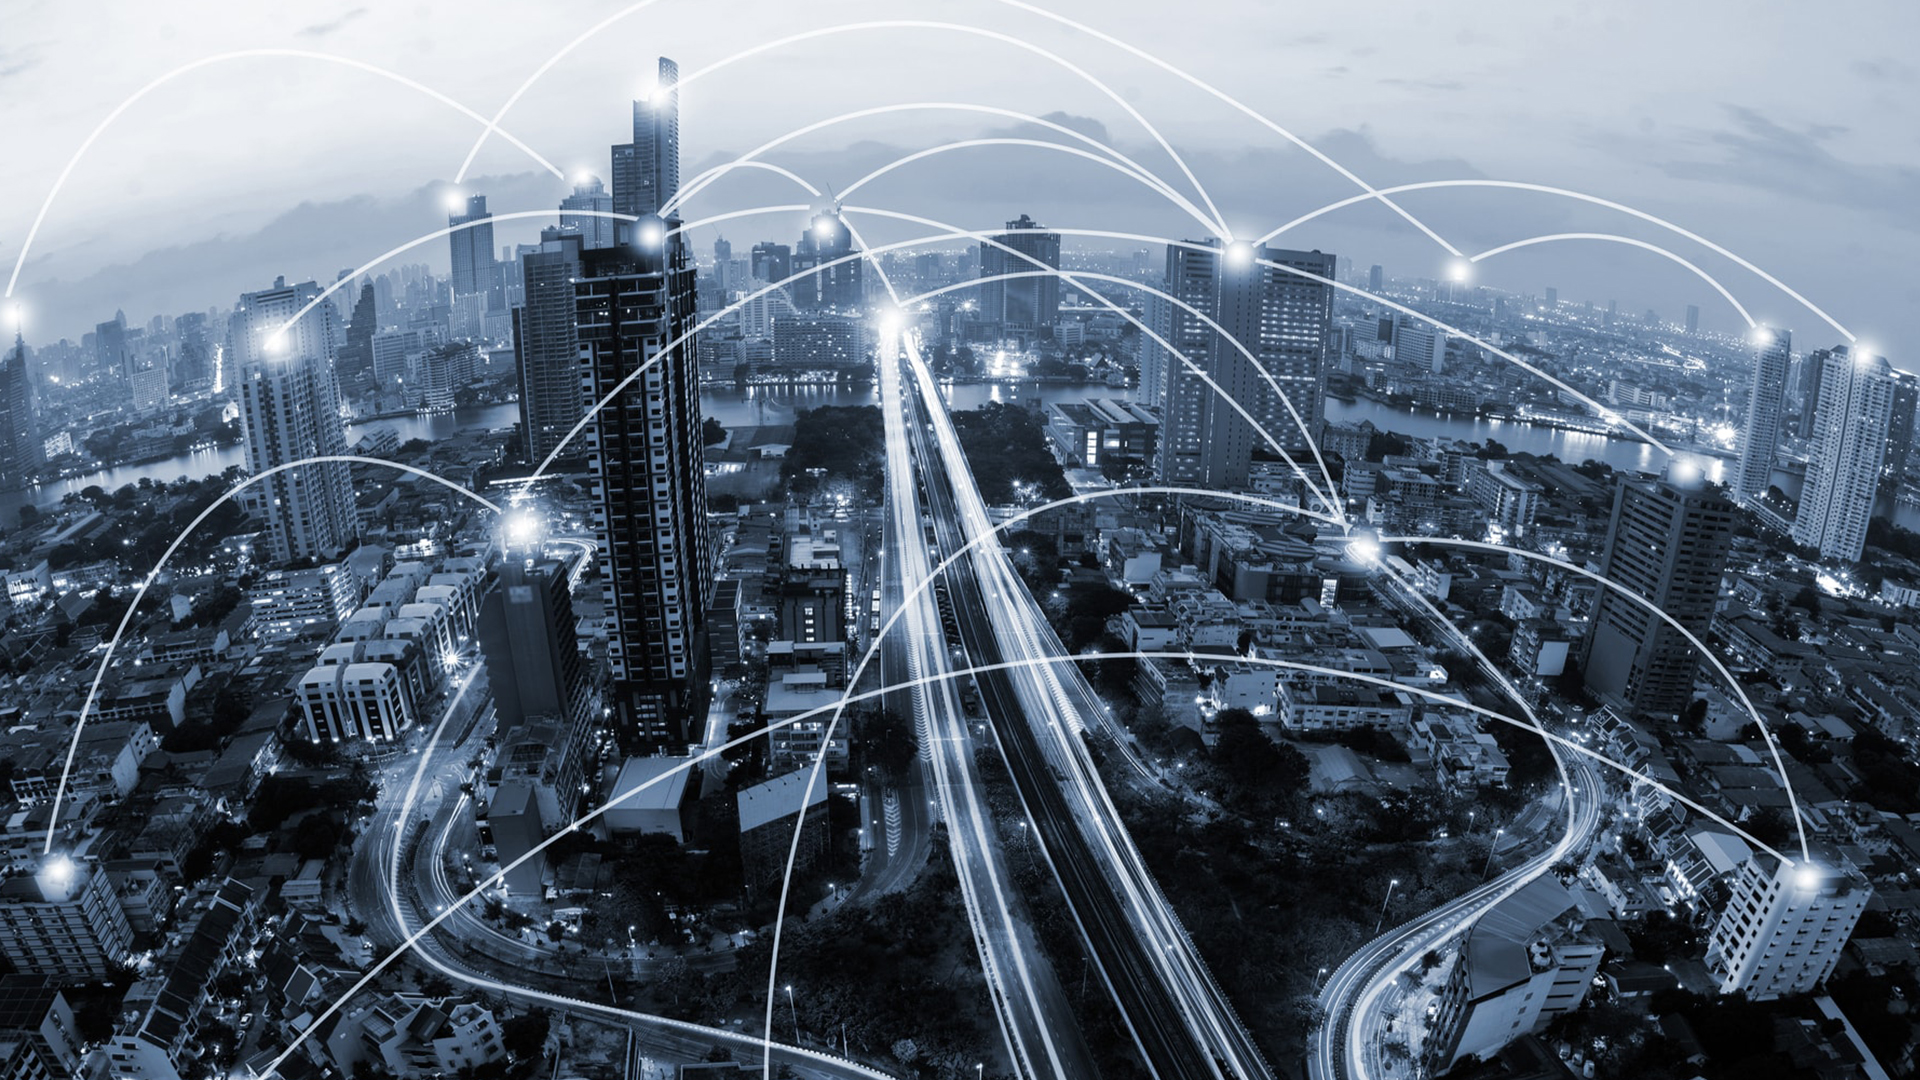 APAC IT decision makers prepared for virtual expansion via interconnection